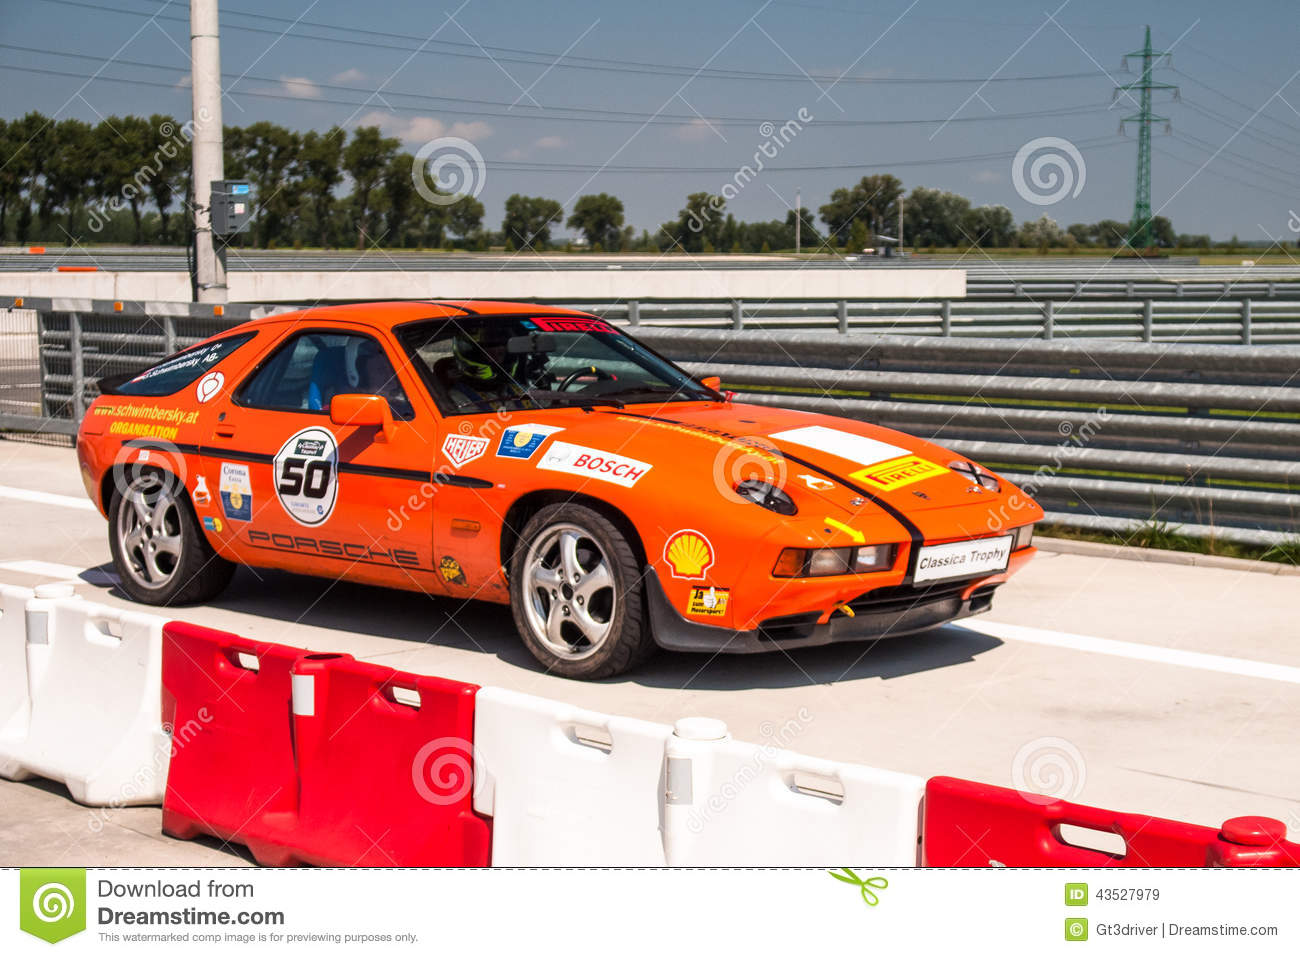 Porsche 928 racing car editorial stock image  Image of